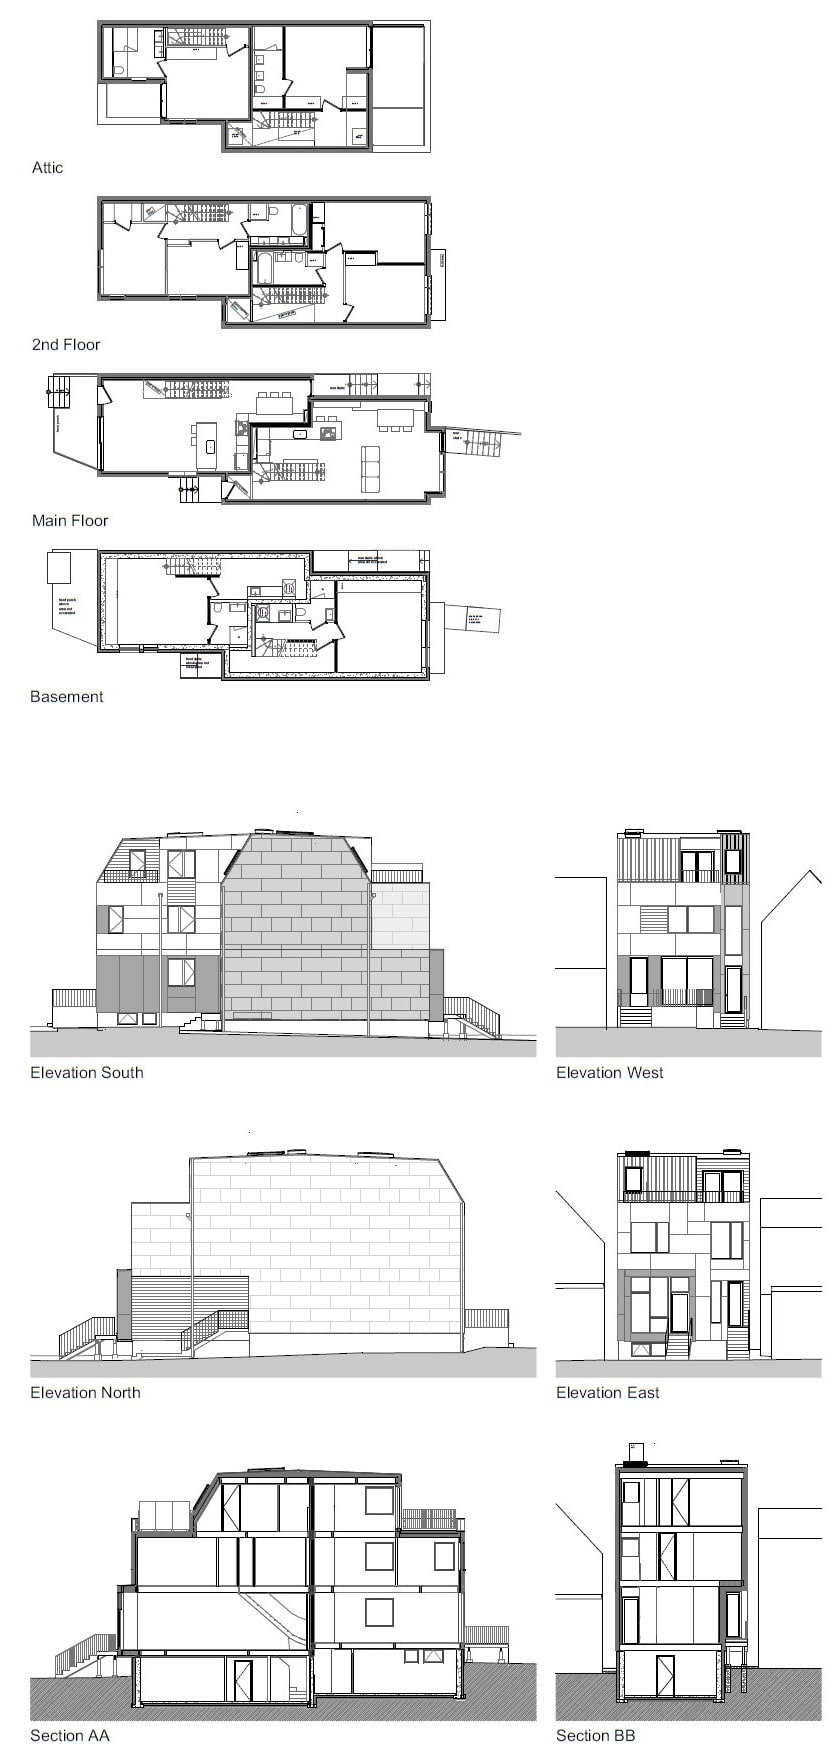 This is an illustration of the floor plan for the house's levels. It also shows the different elevations to give you a better grasp of the entire home.